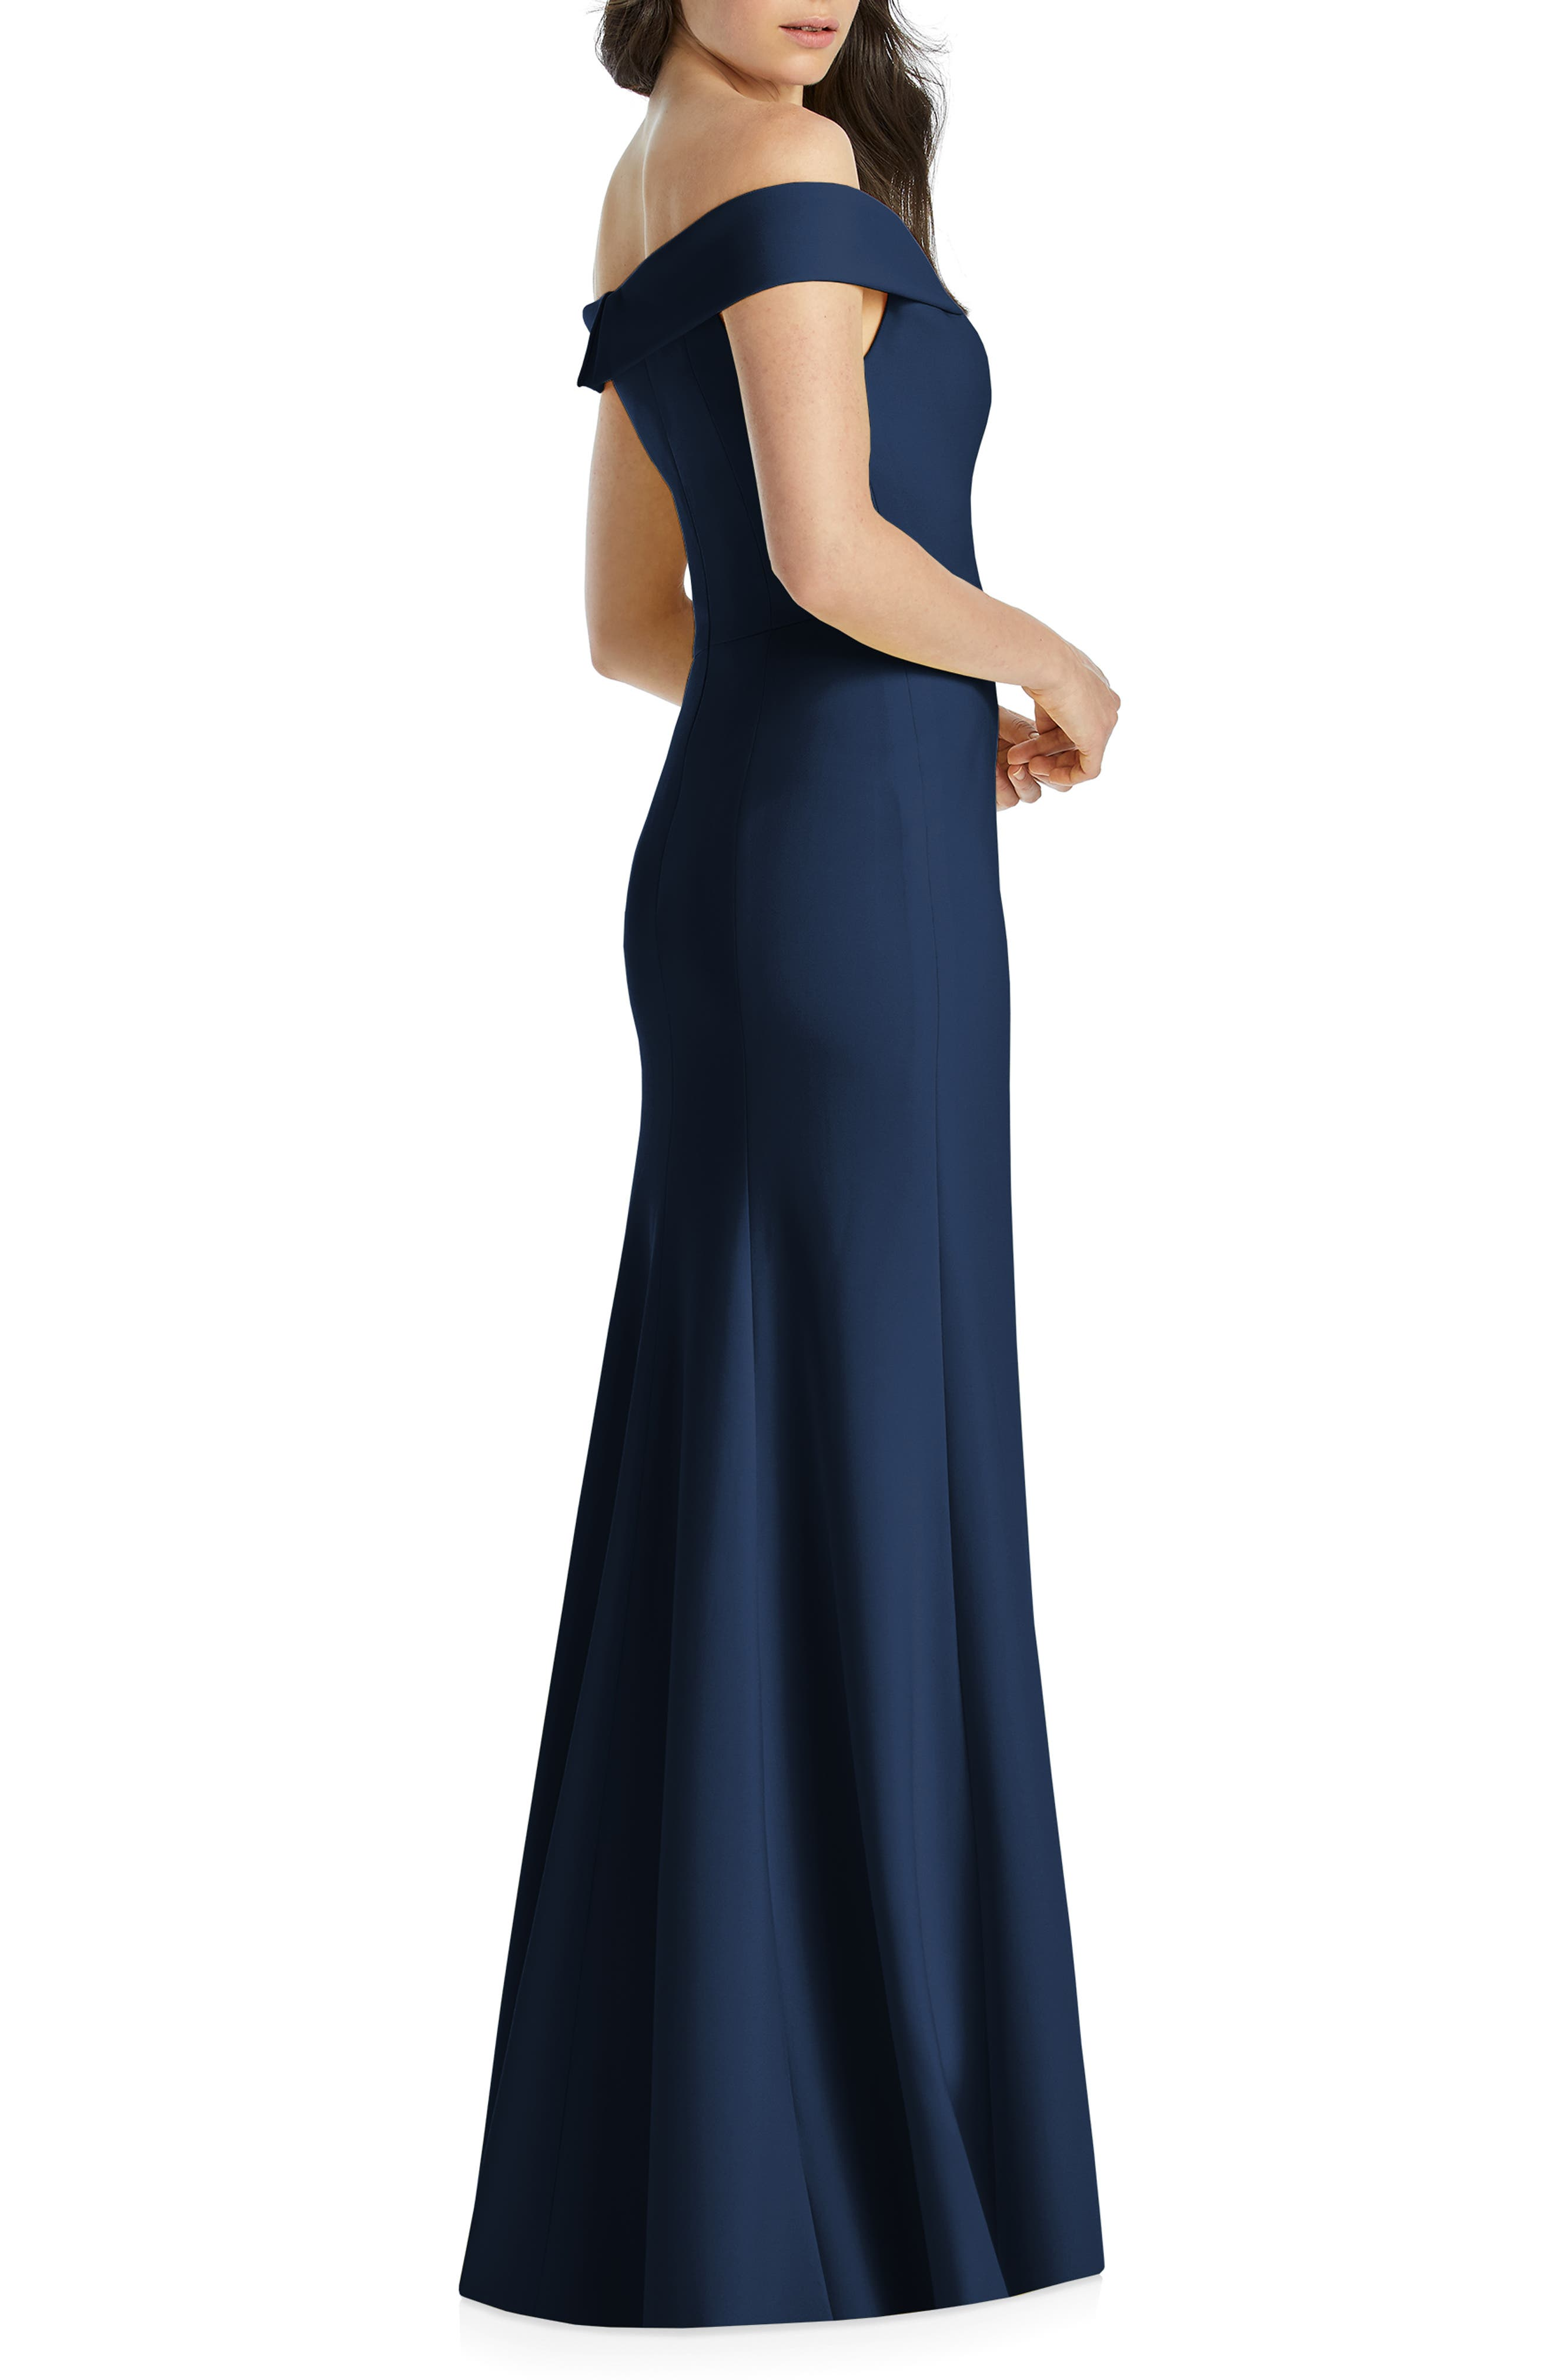 DESSY COLLECTION, Notched Off the Shoulder Crepe Gown, Alternate thumbnail 2, color, MIDNIGHT